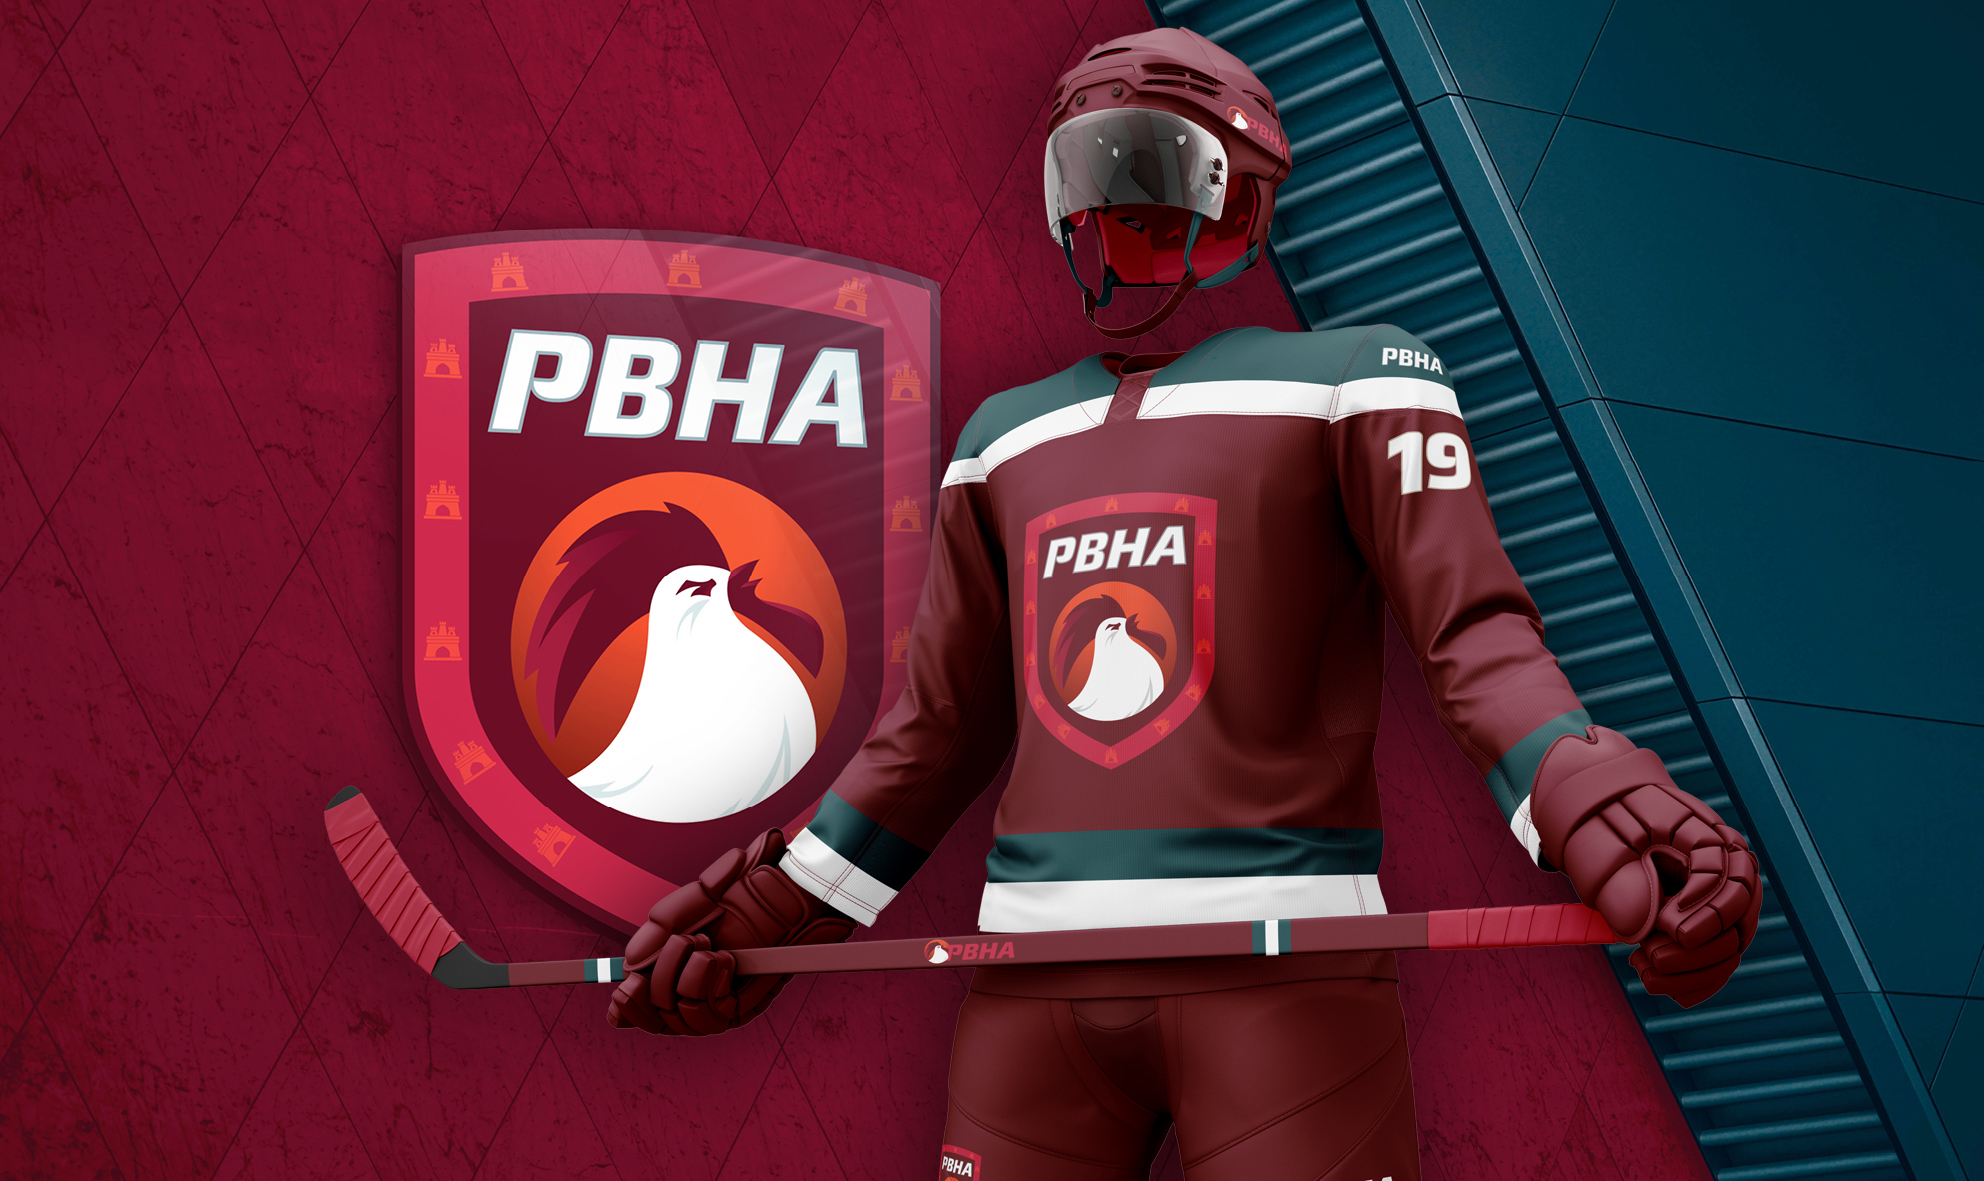 Portuguese Ball Hockey Association